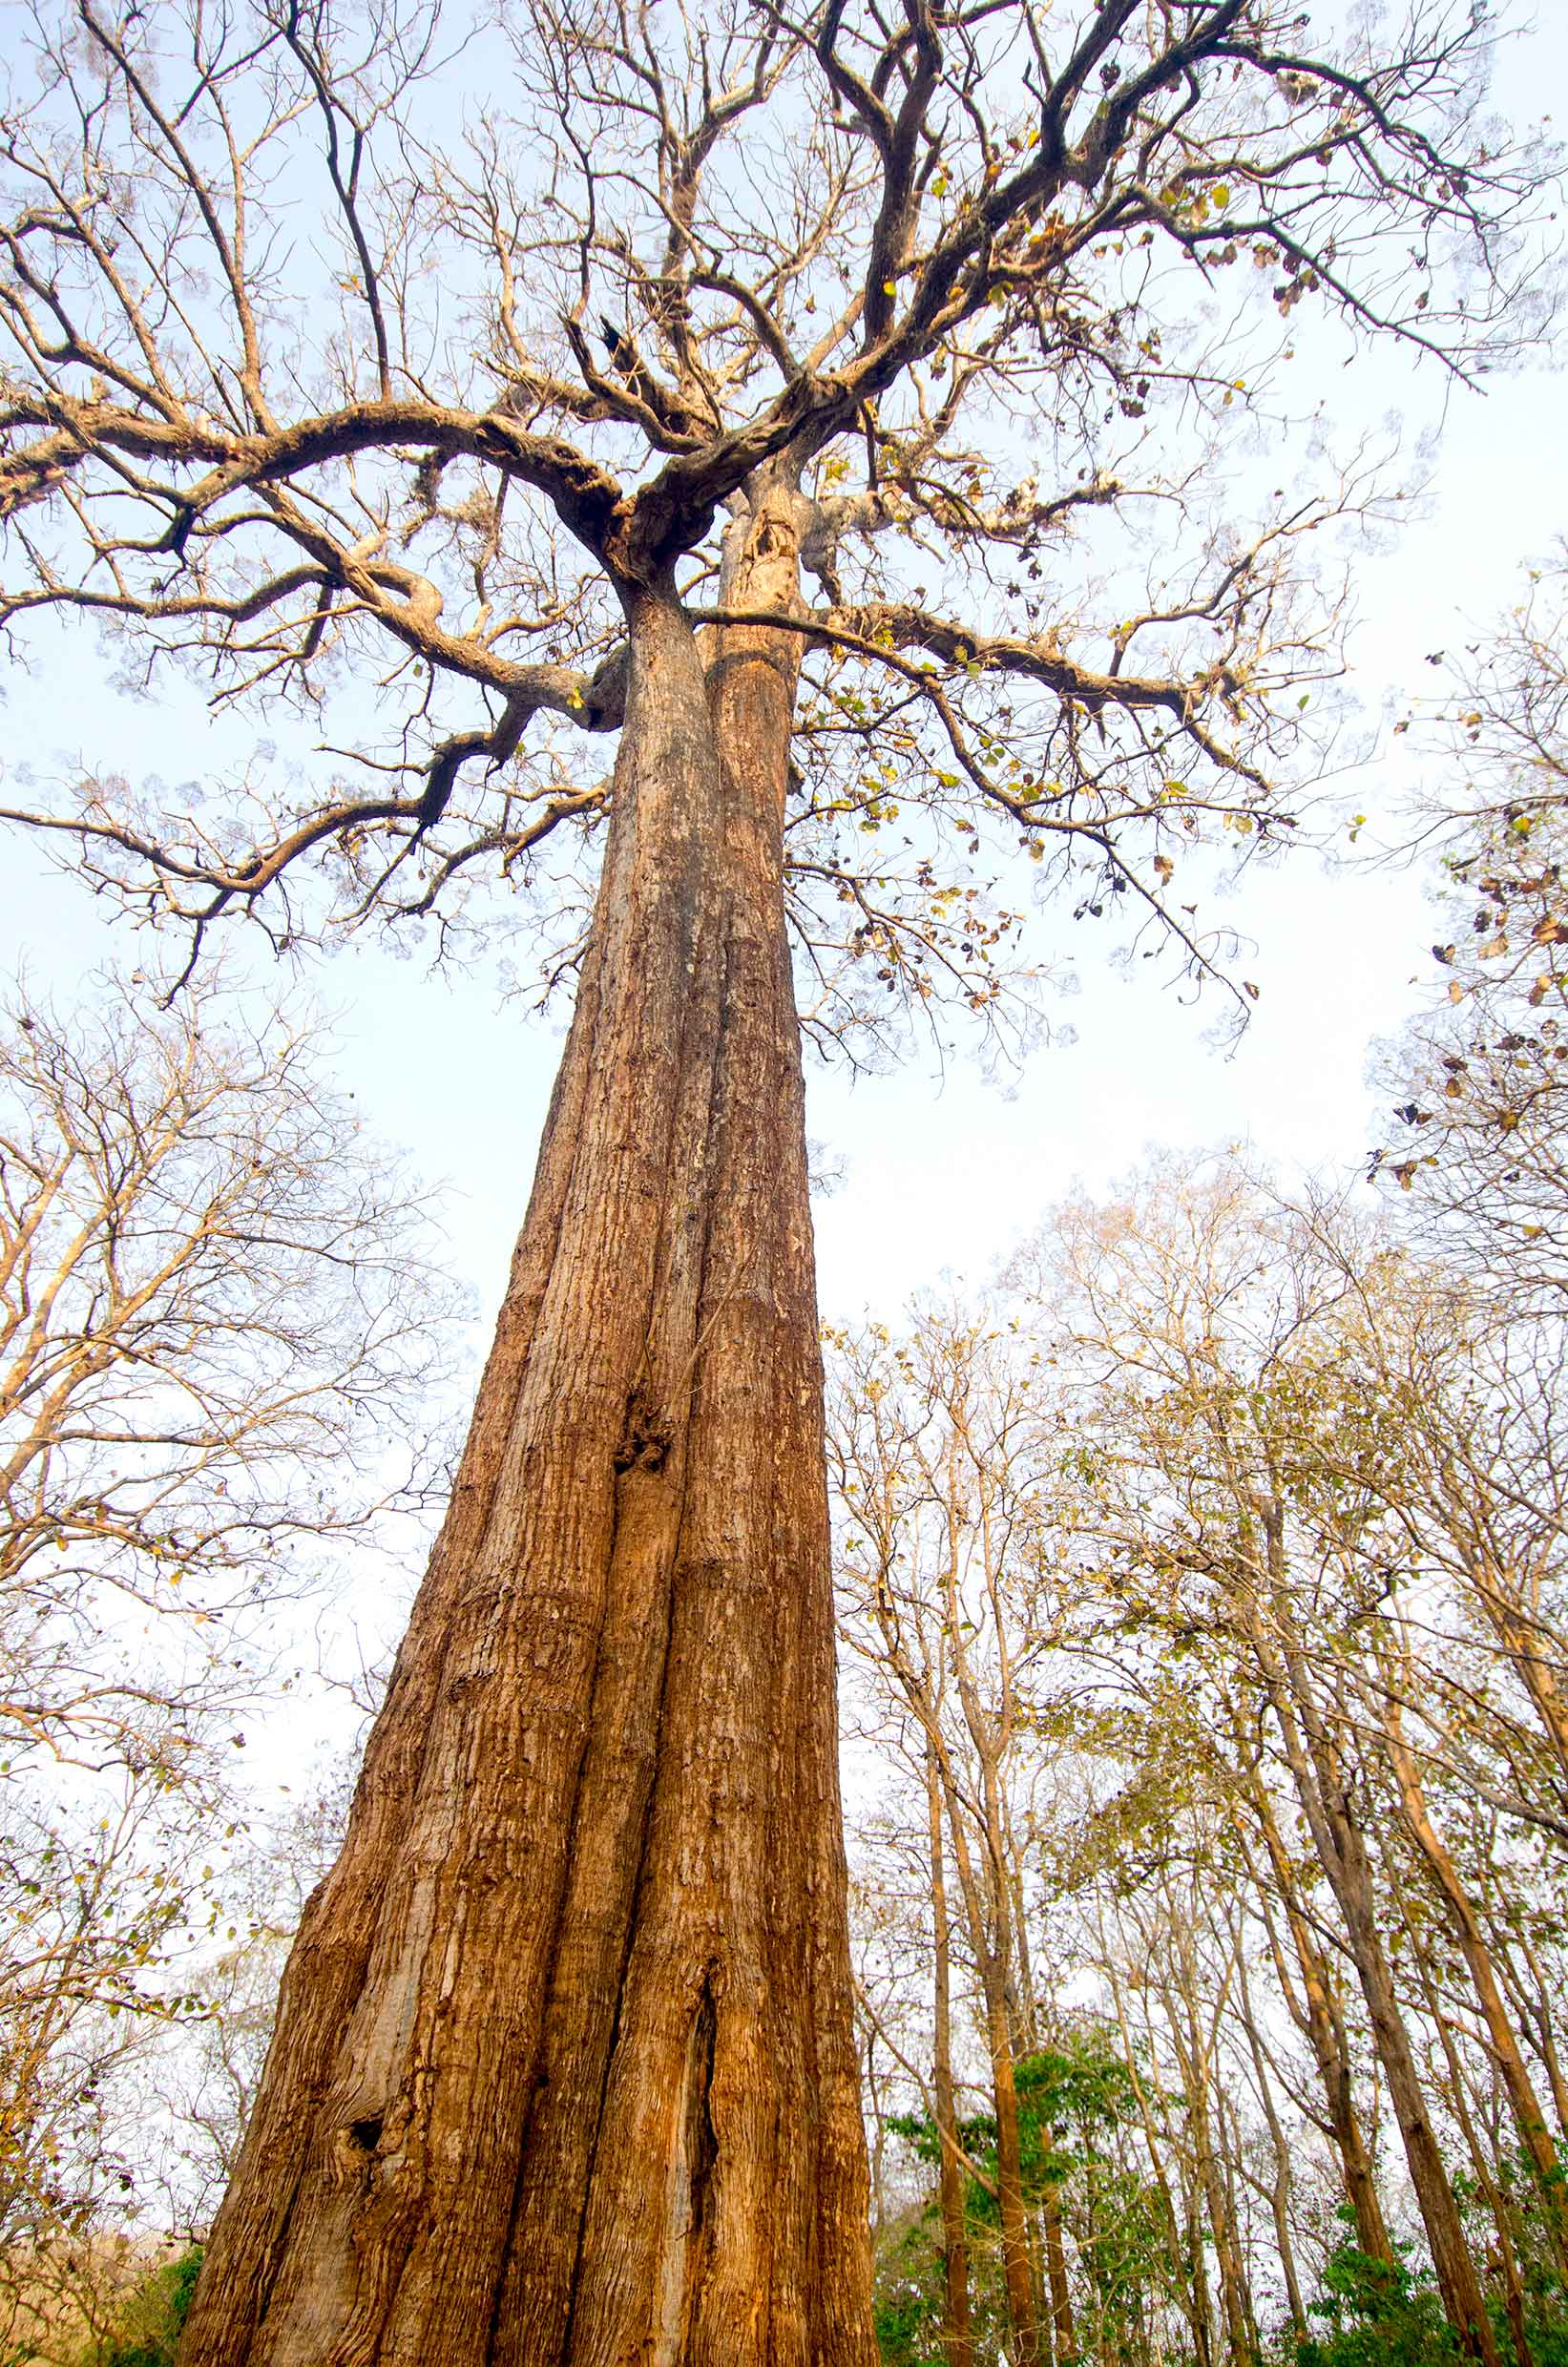 The Kannimmara tree, said to be over 400 years old, is one of the oldest living teak trees in the reserve. Legend has it that when the tree was cut, blood spurted from it. Since then it has been referred to as the